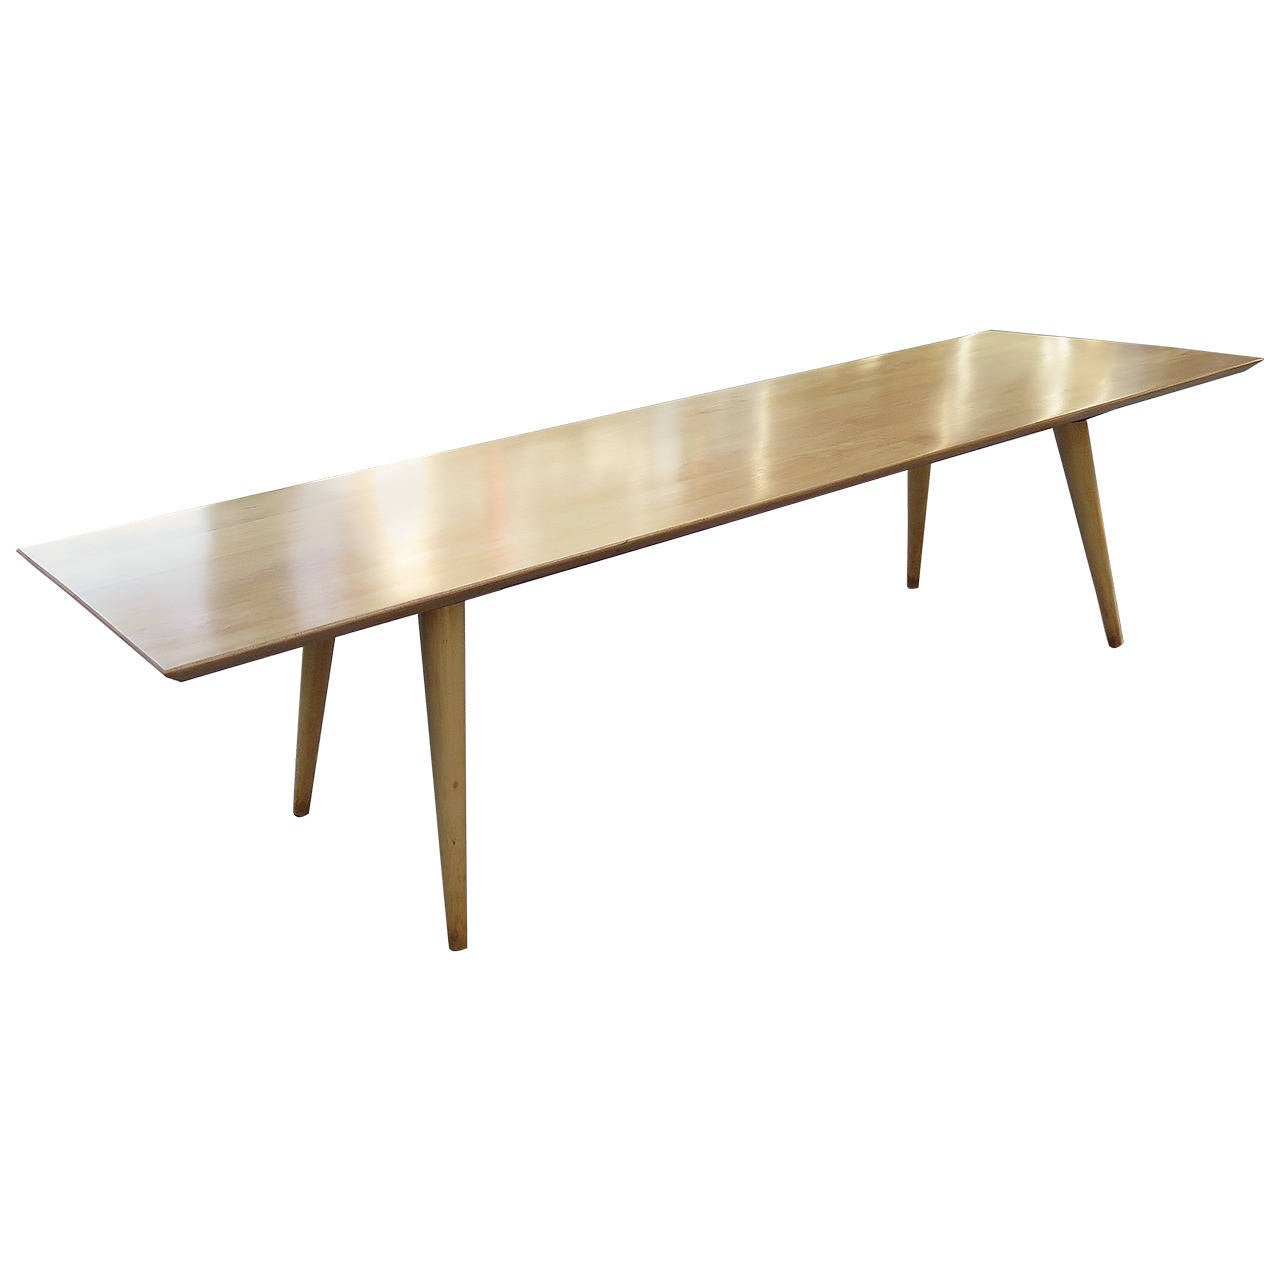 1950 Paul Mccobb 60 Inch Birch Bench For Sale At 1stdibs